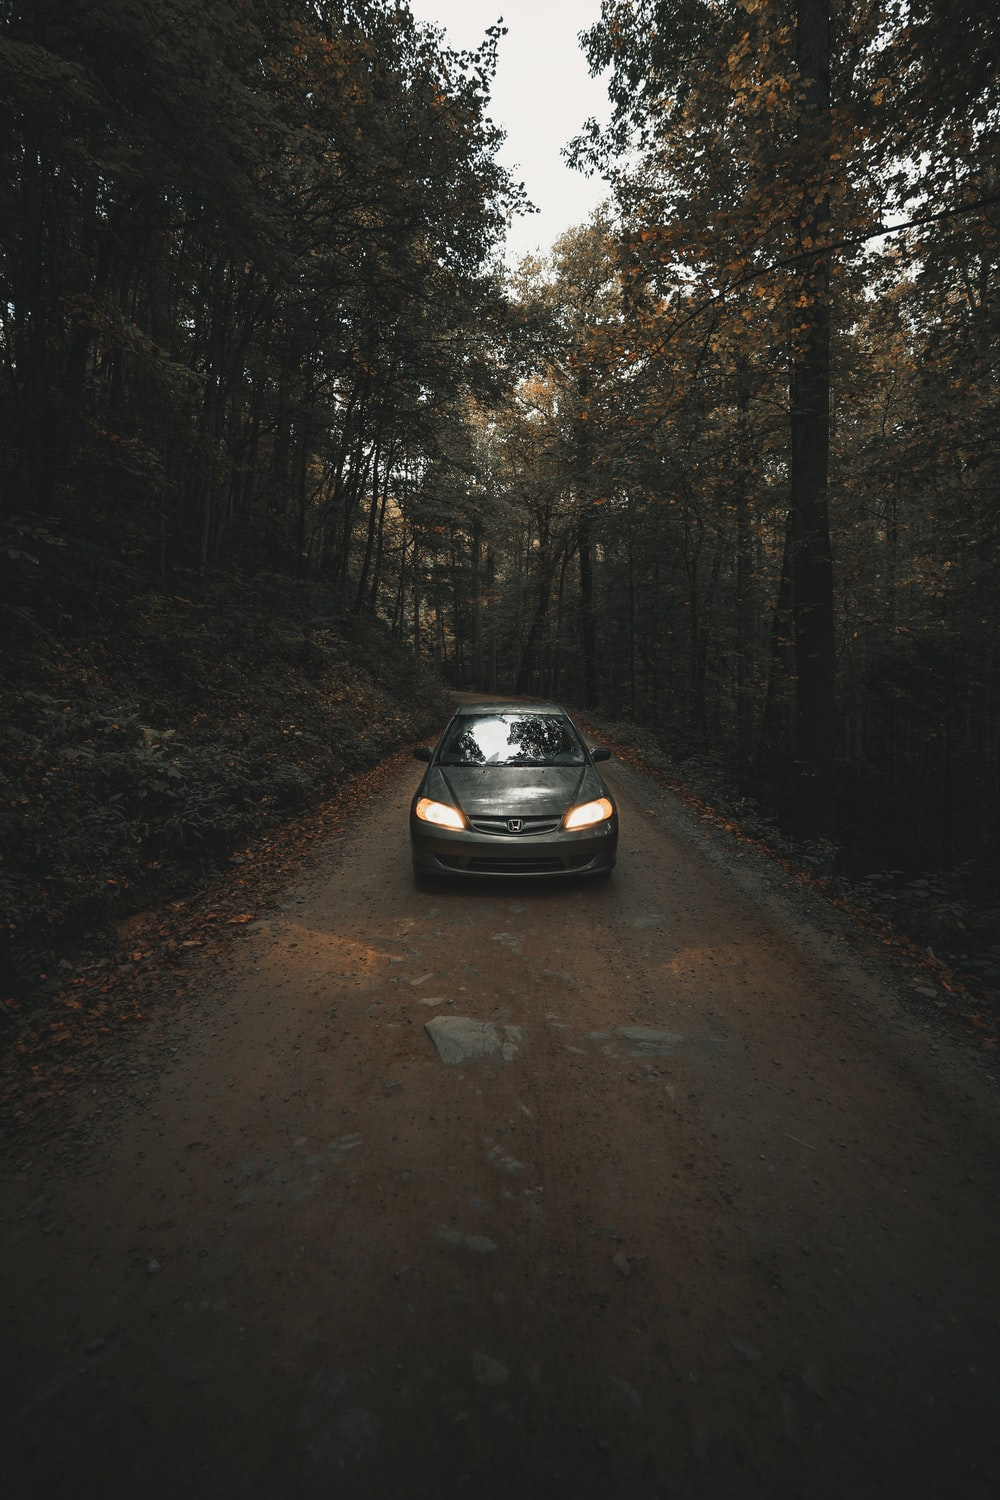 Car On The Road Pictures Download Free Images On Unsplash